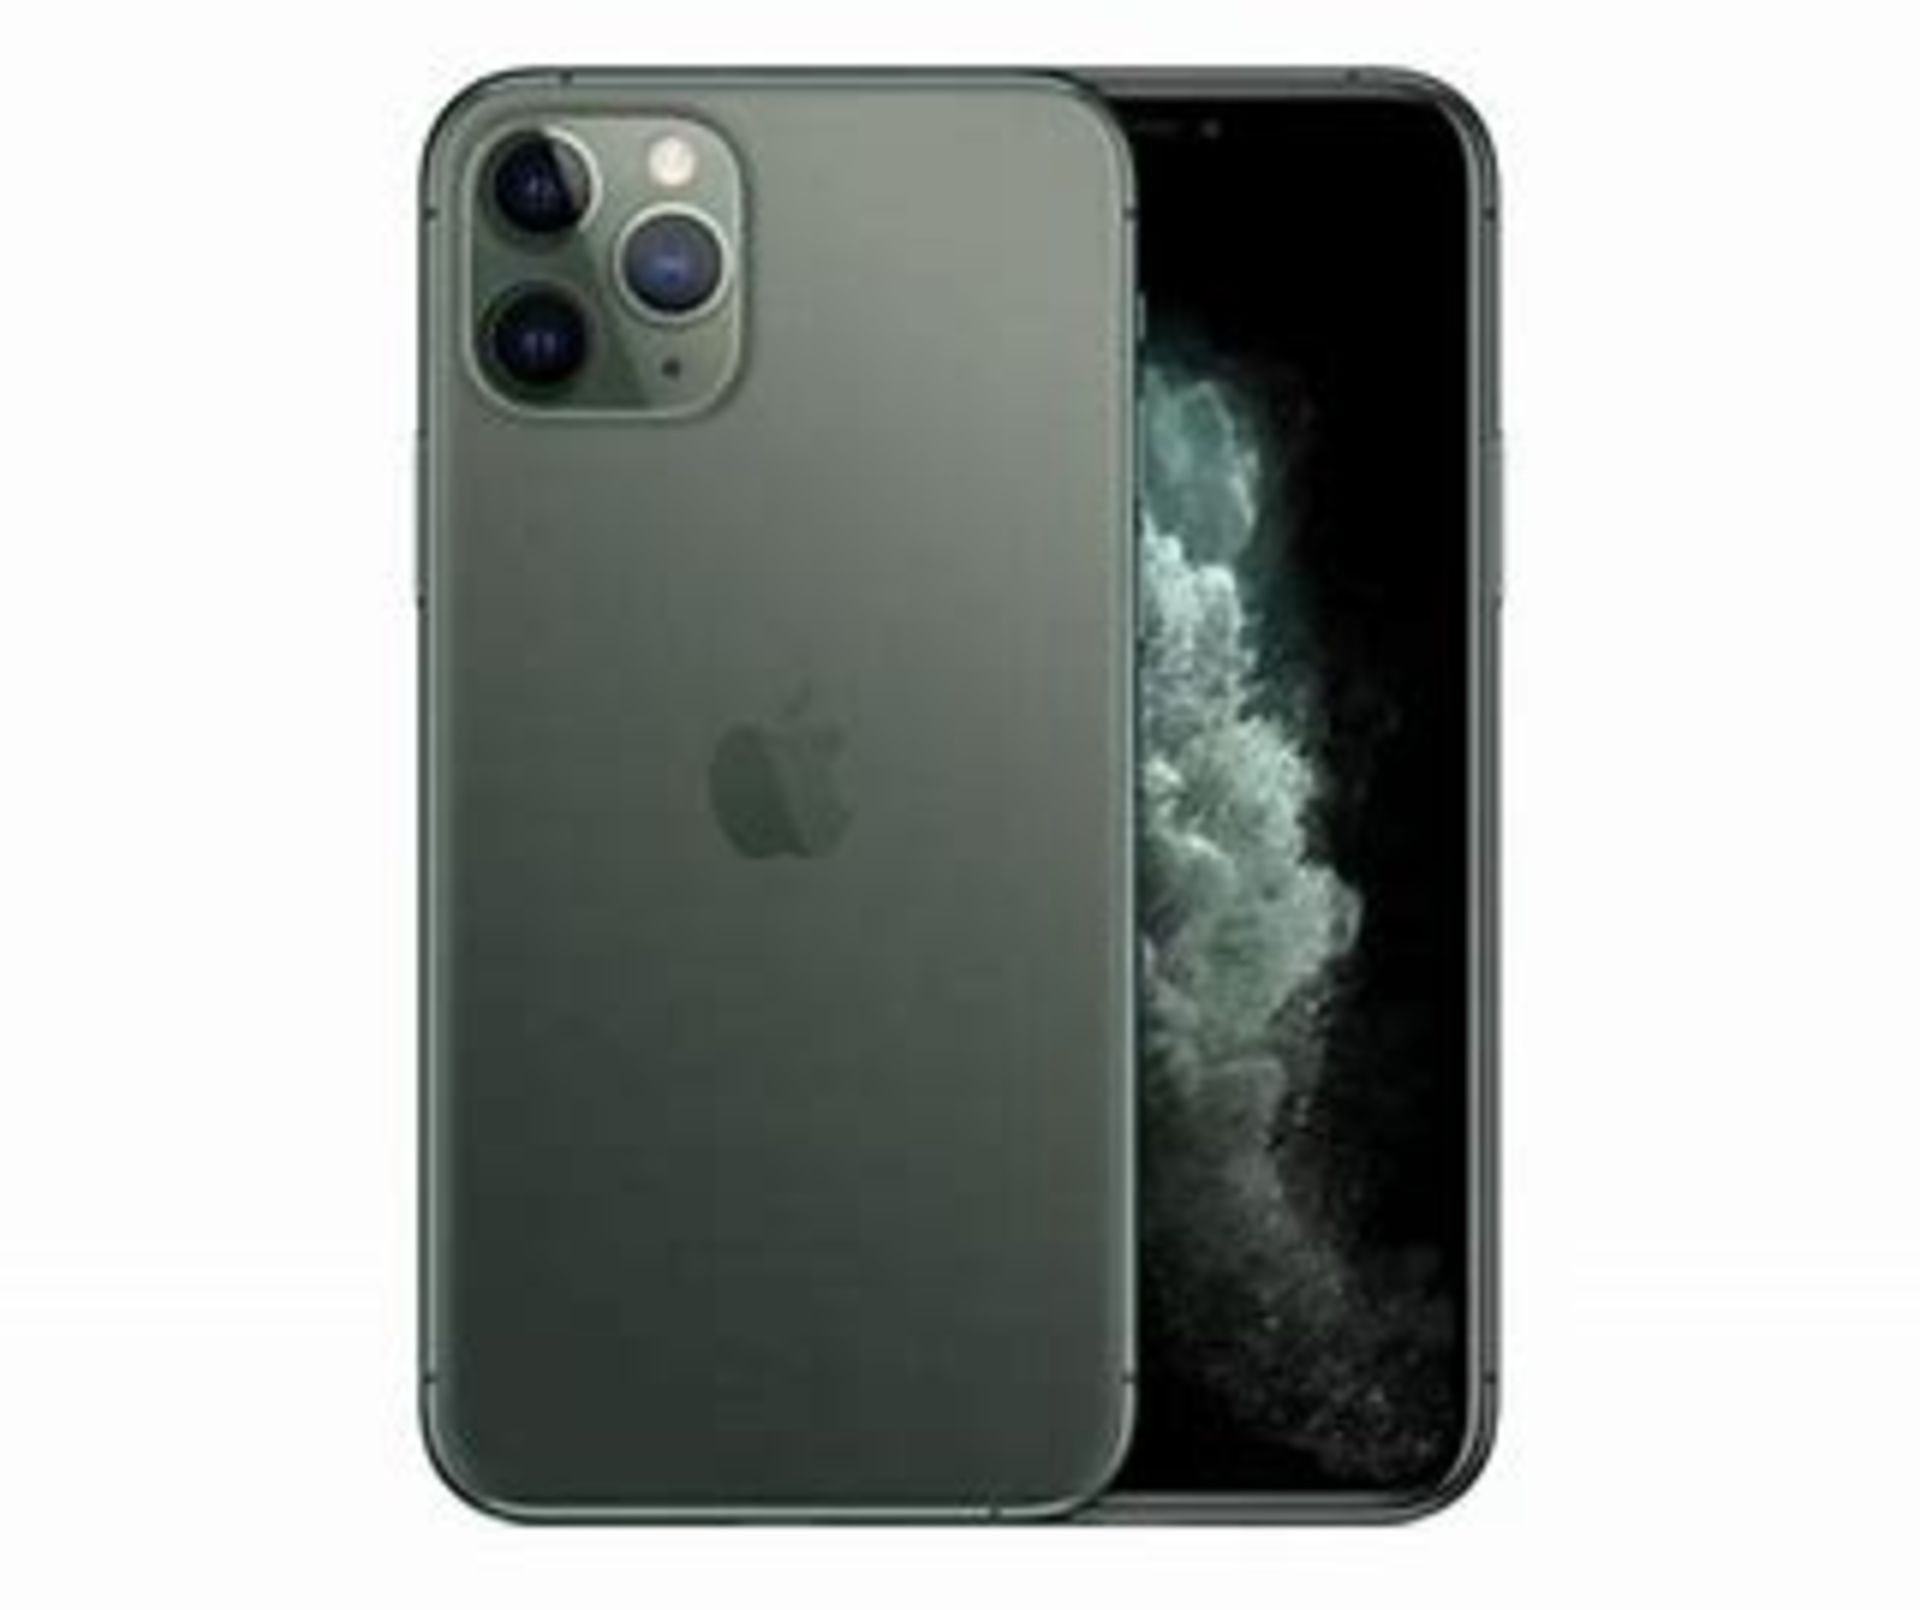 Lot 37 - Apple iPhone 11 Pro Max 64GB Green RRP £1150 - Grade A - Perfect Working Condition - (Fully